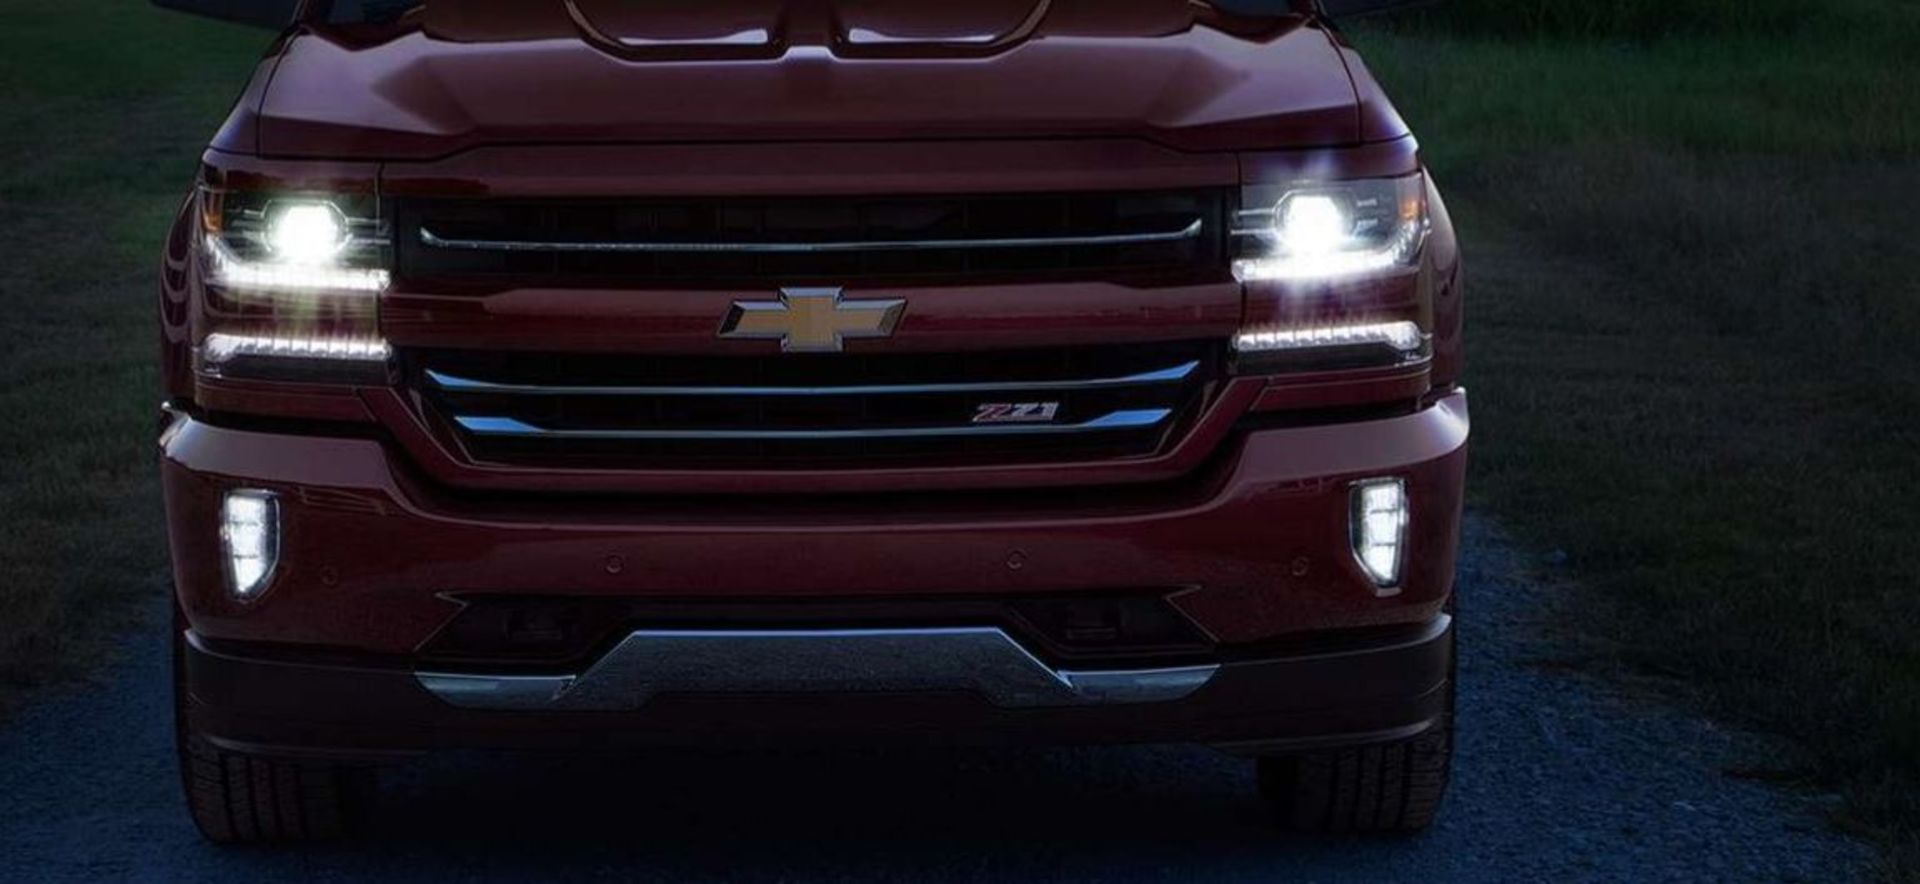 Get Your Chevy Vehicle in Tip-Top Shape!